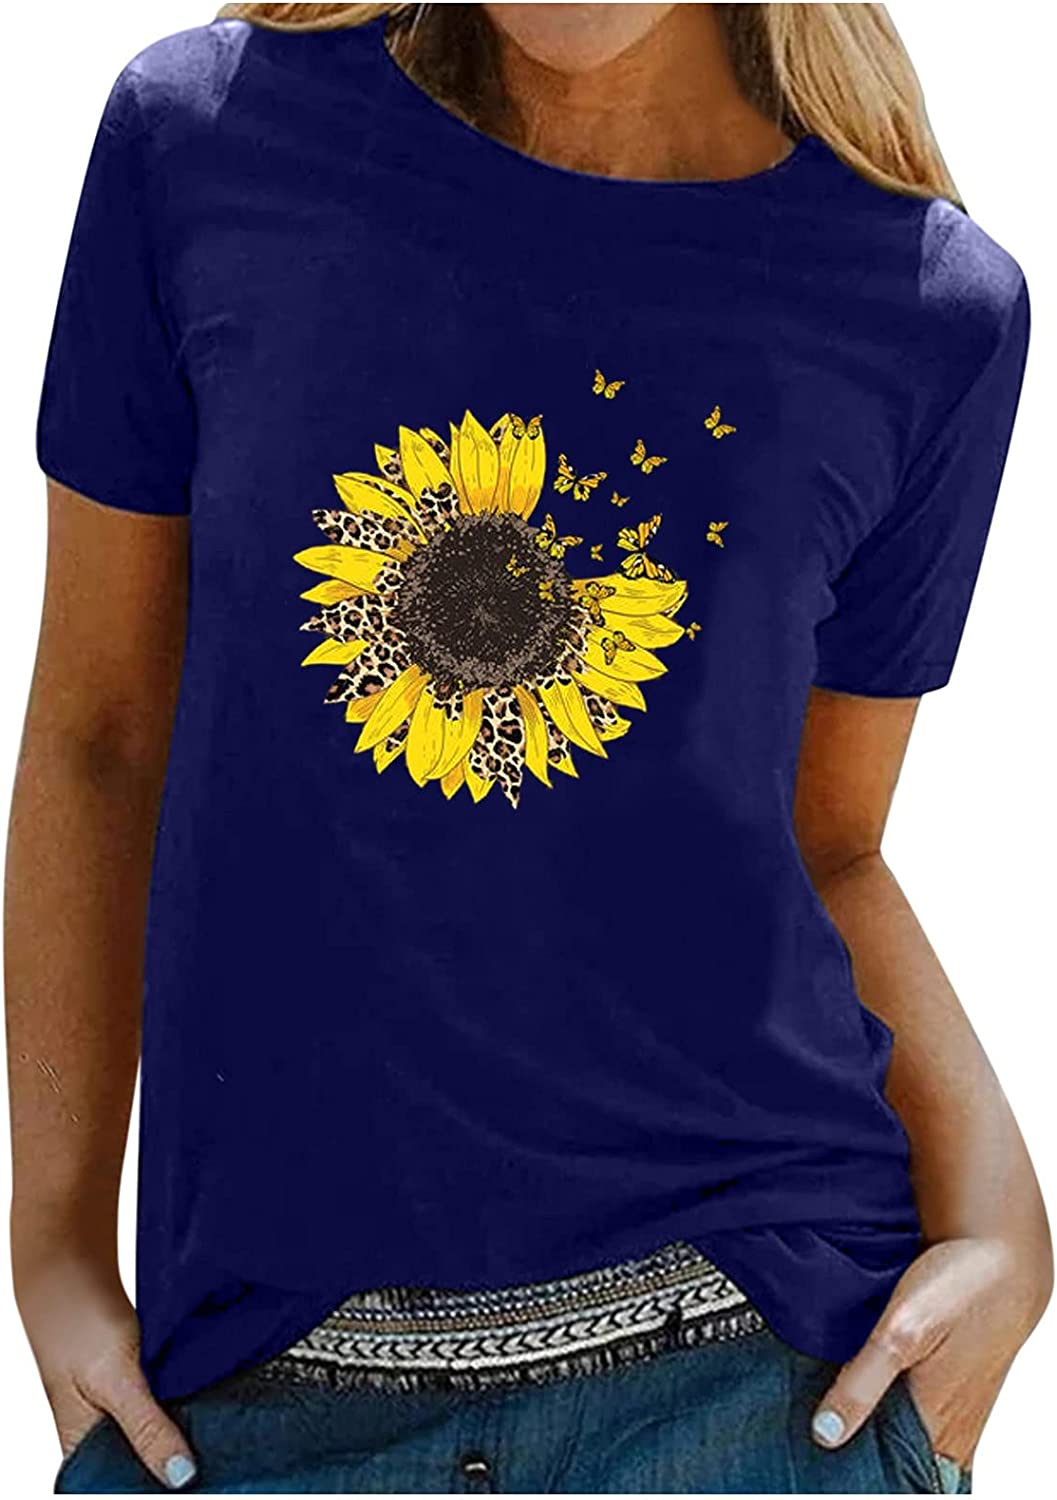 XINXX Womens Short Sleeve Graphic T Shirt Plus Size Sunflower Print Cute Funny Graphic Tees Casual Cotton Tunic Tops